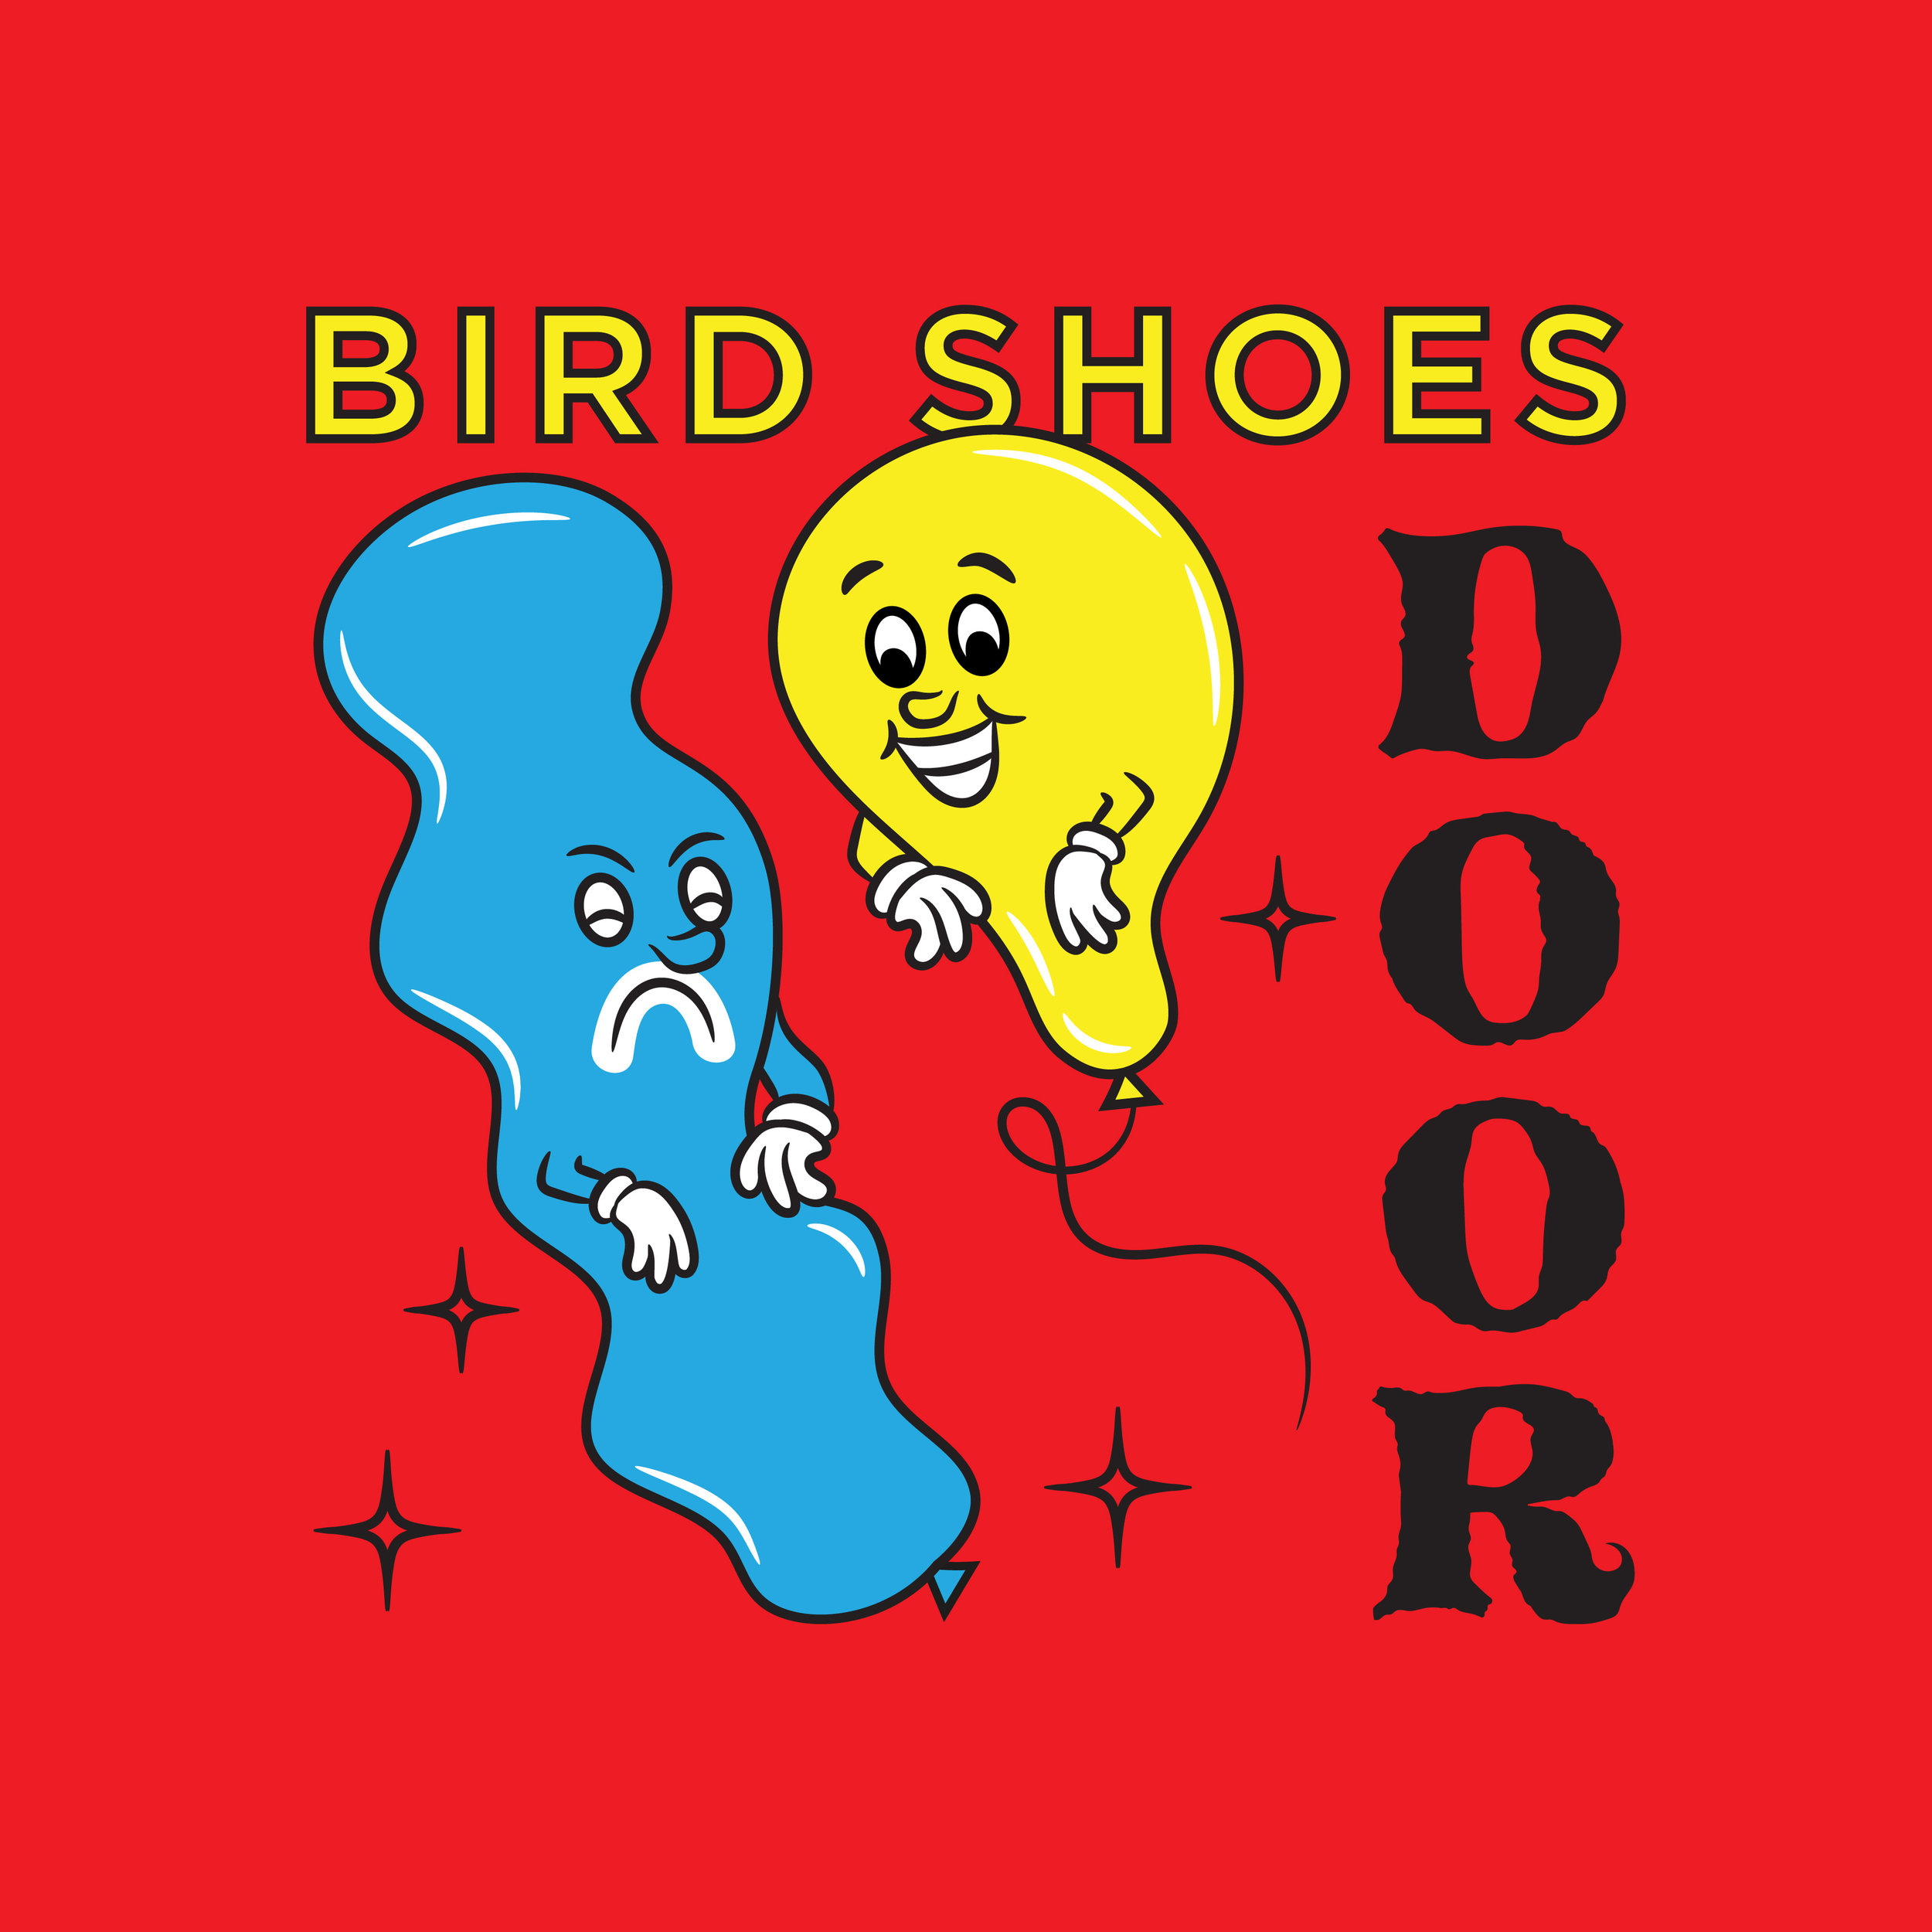 Bird Shoes - Door Single Cover_100 ppi.jpg